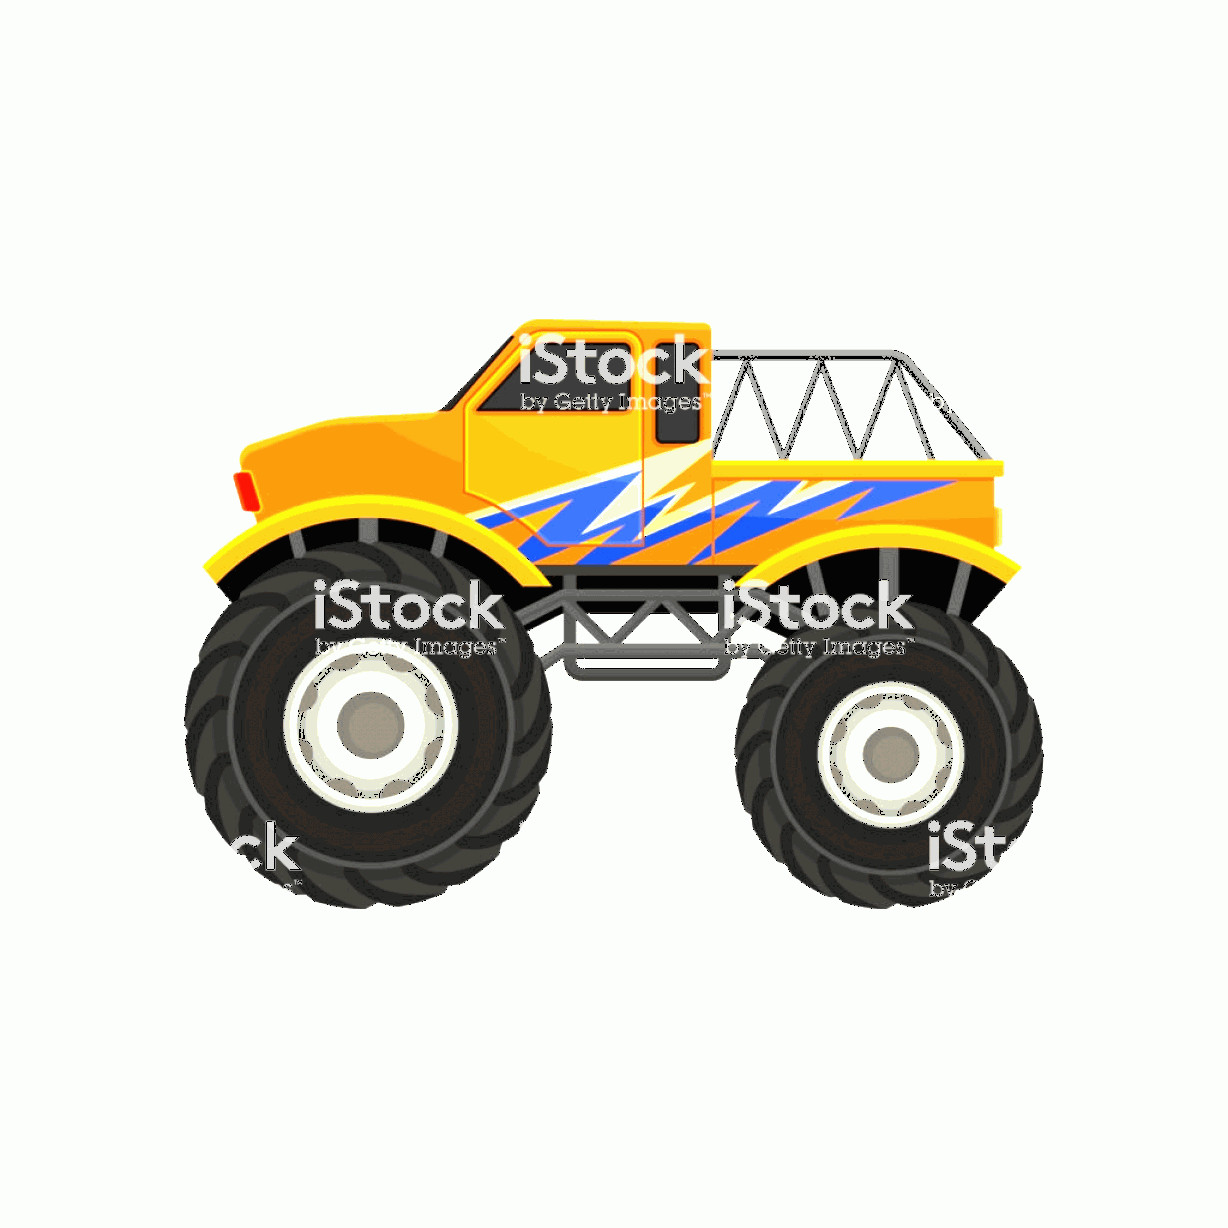 Monster Truck Tires Vector: Flat Vector Icon Of Heavy Monster Truck Orange Pickup With Large Tires Black Tinted Gm